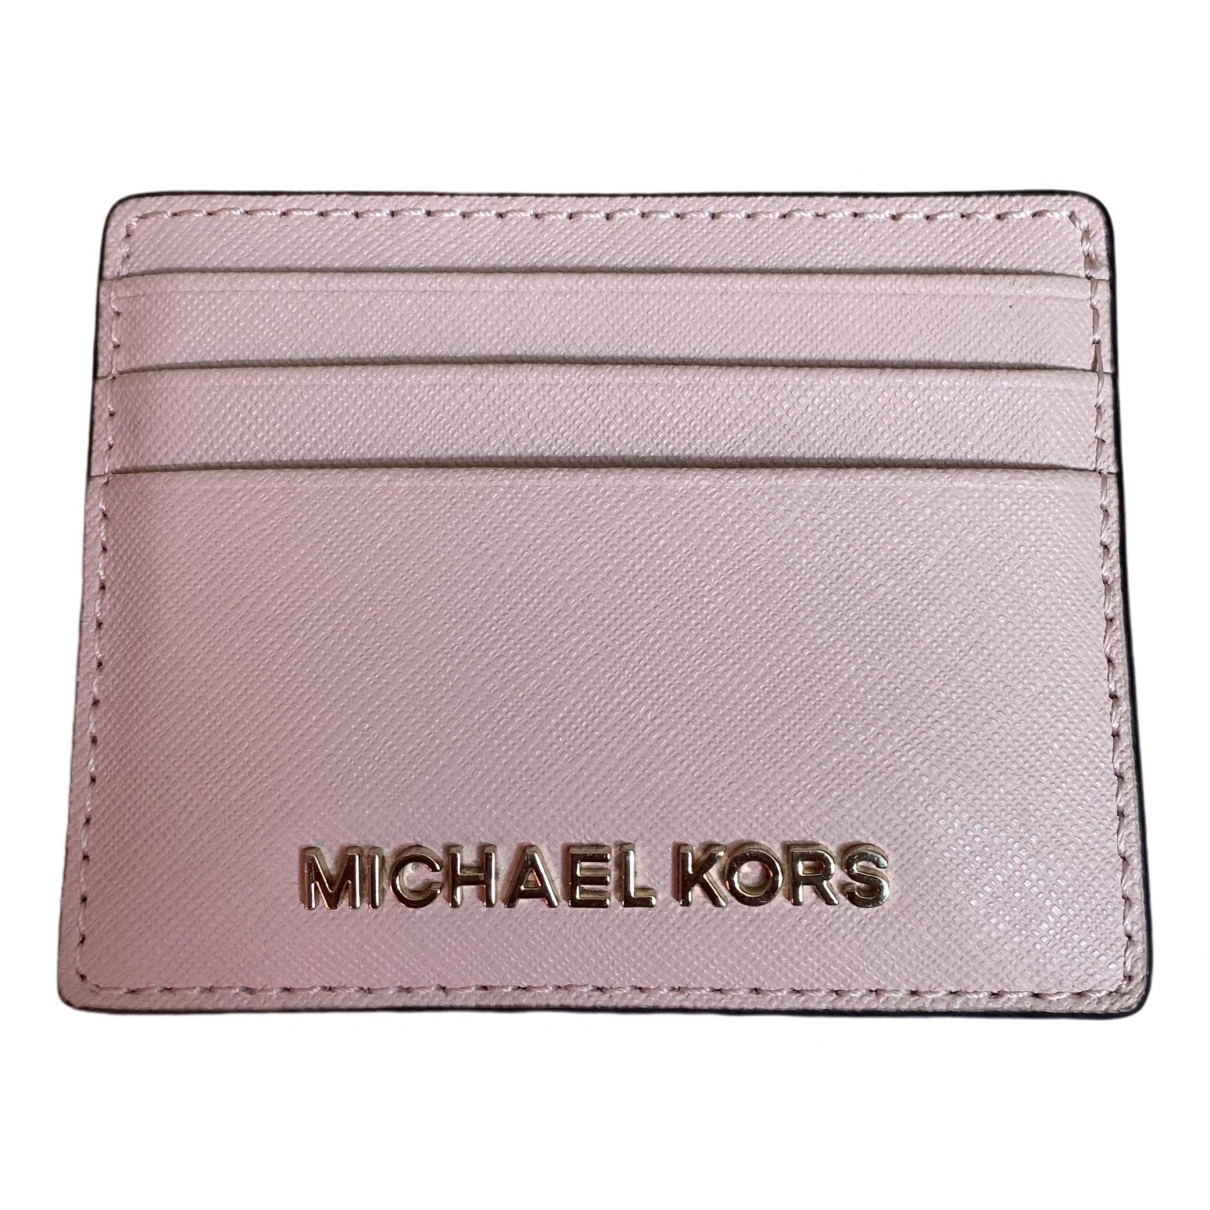 Michael Kors \N Pink Leather wallet for Women \N